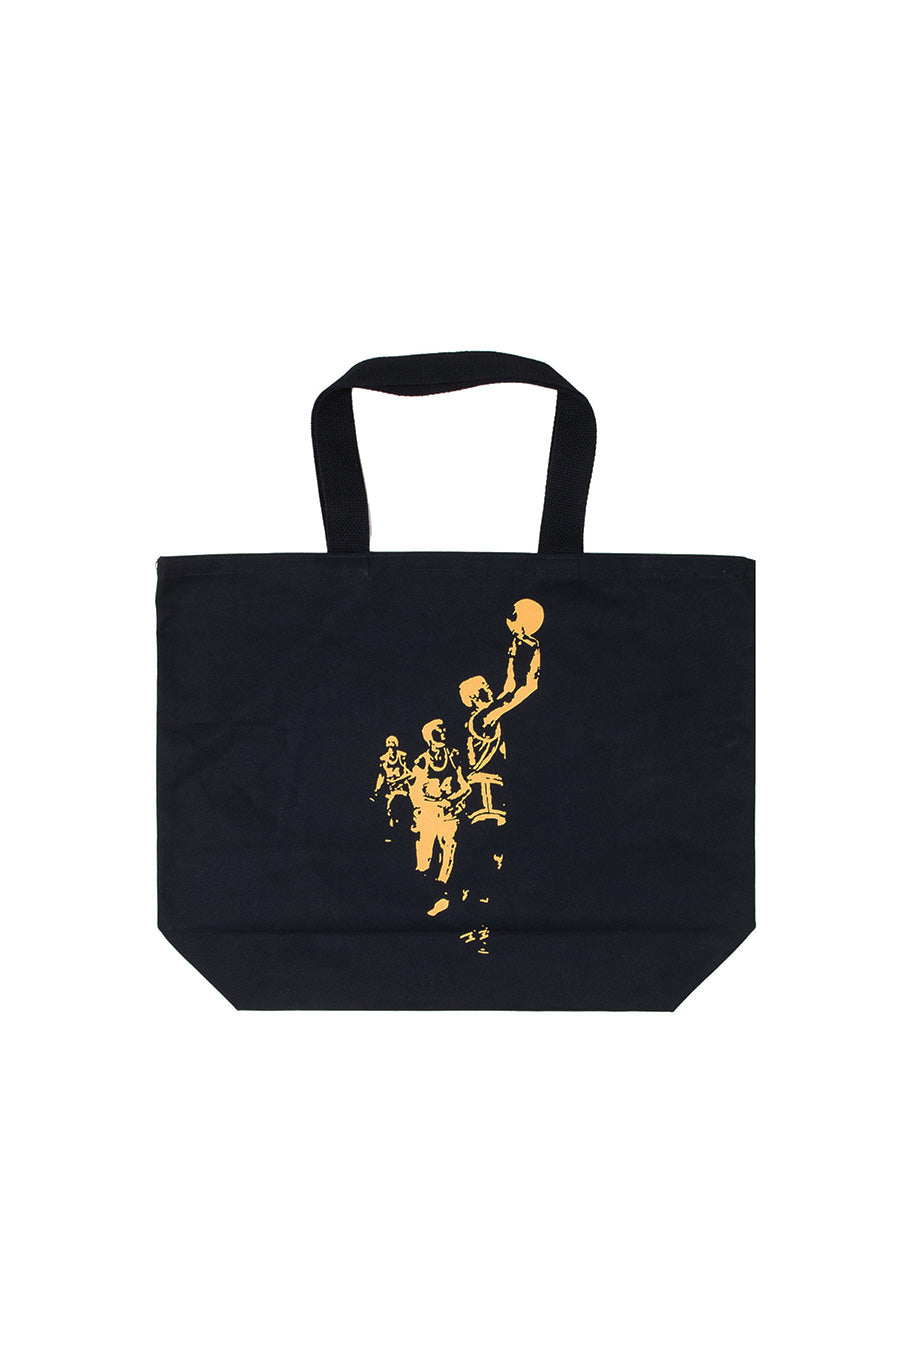 Franchise - Black Professional Tote Bag | 1032 SPACE